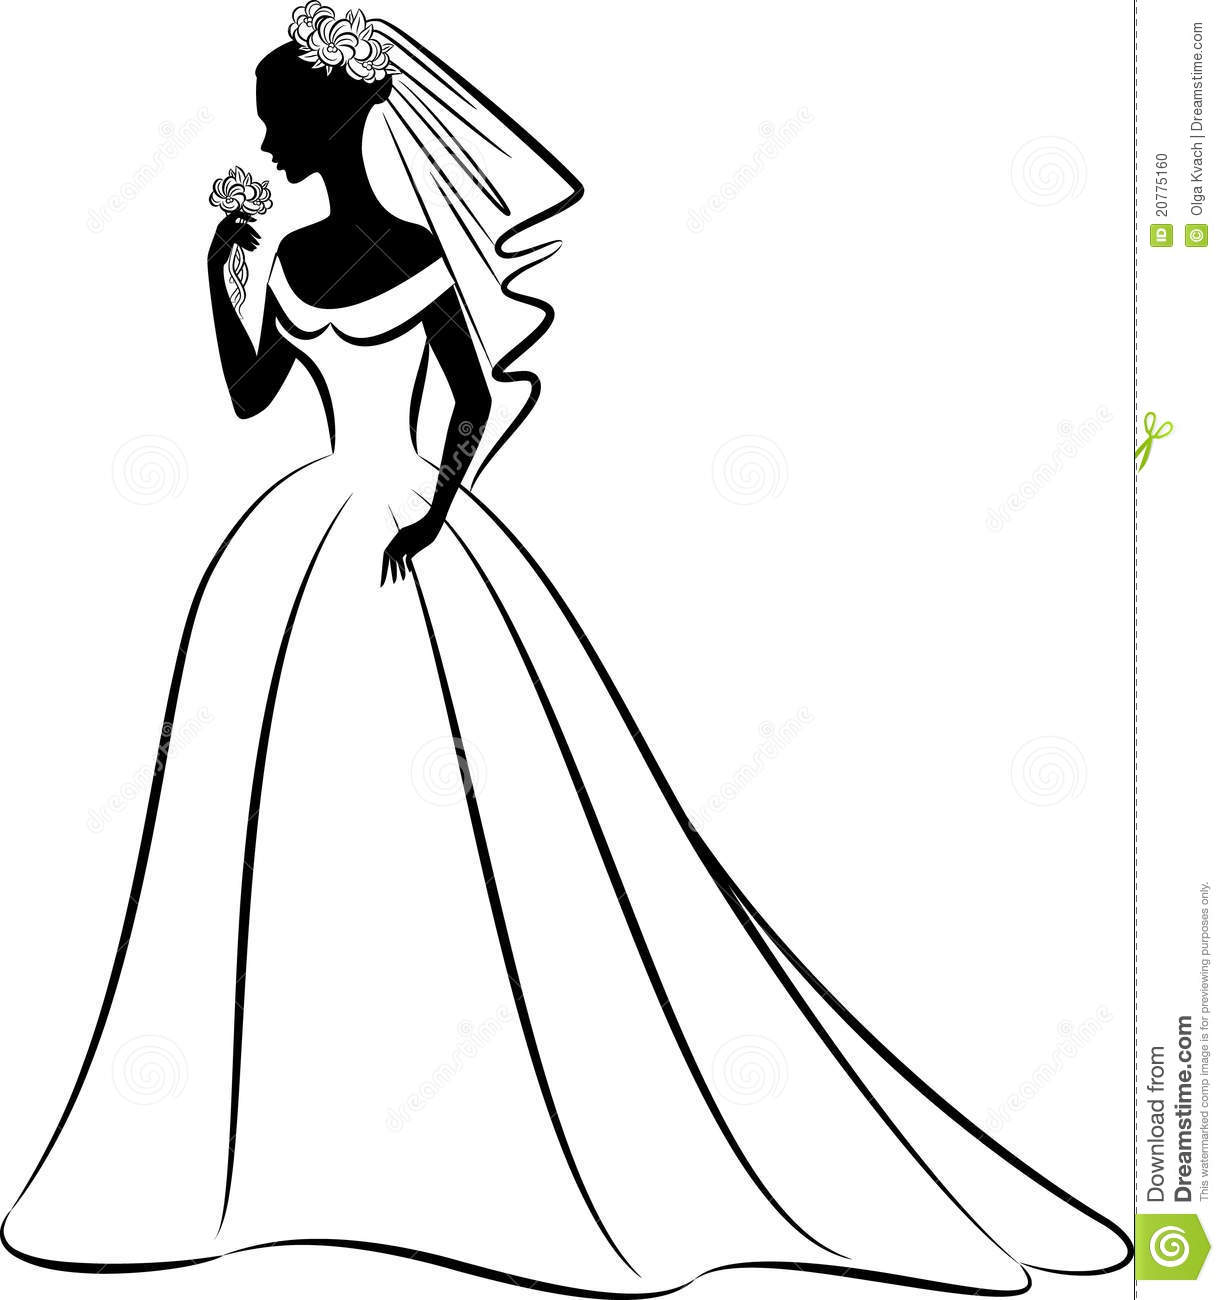 Wedding Clipart Black And White.Black And White Elegant Artistic Wedding Dress Png Free Black And